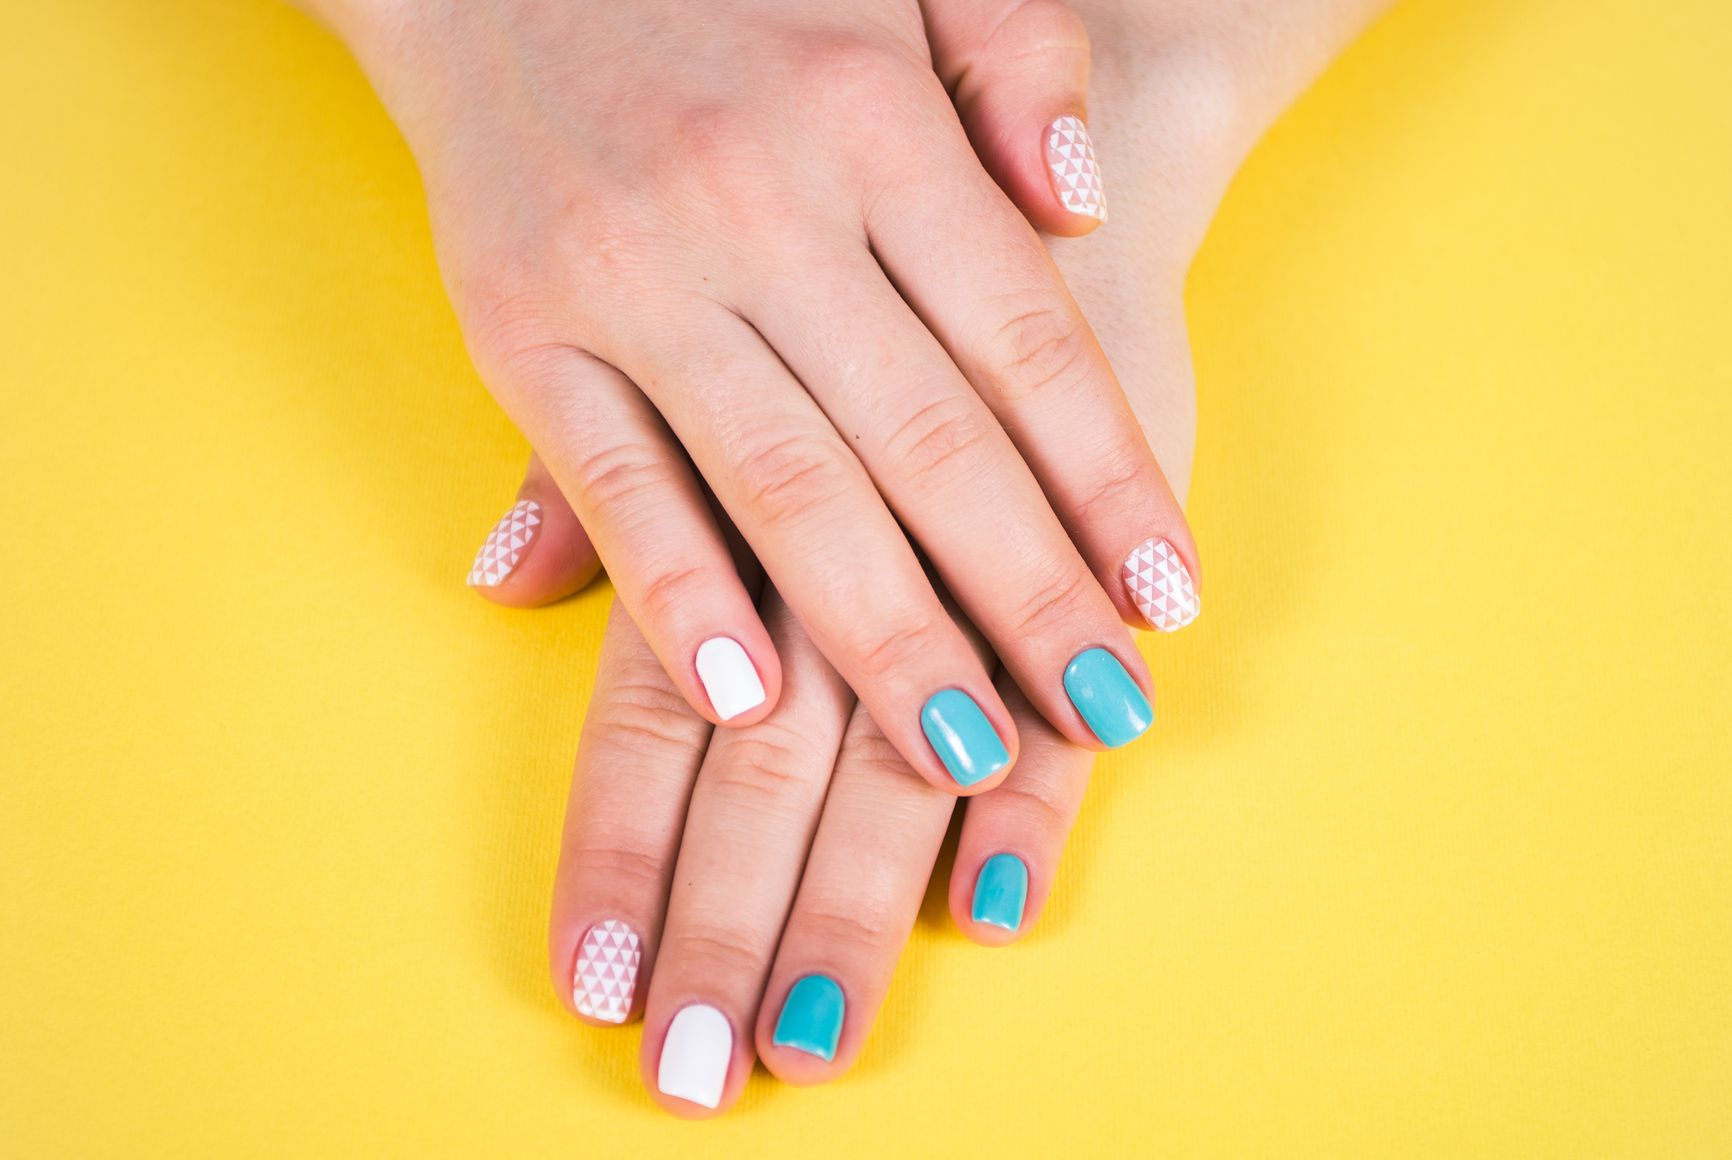 Yes, It's Possible To Remove Your Gel Mani At Home Without Effing Up Your Nails